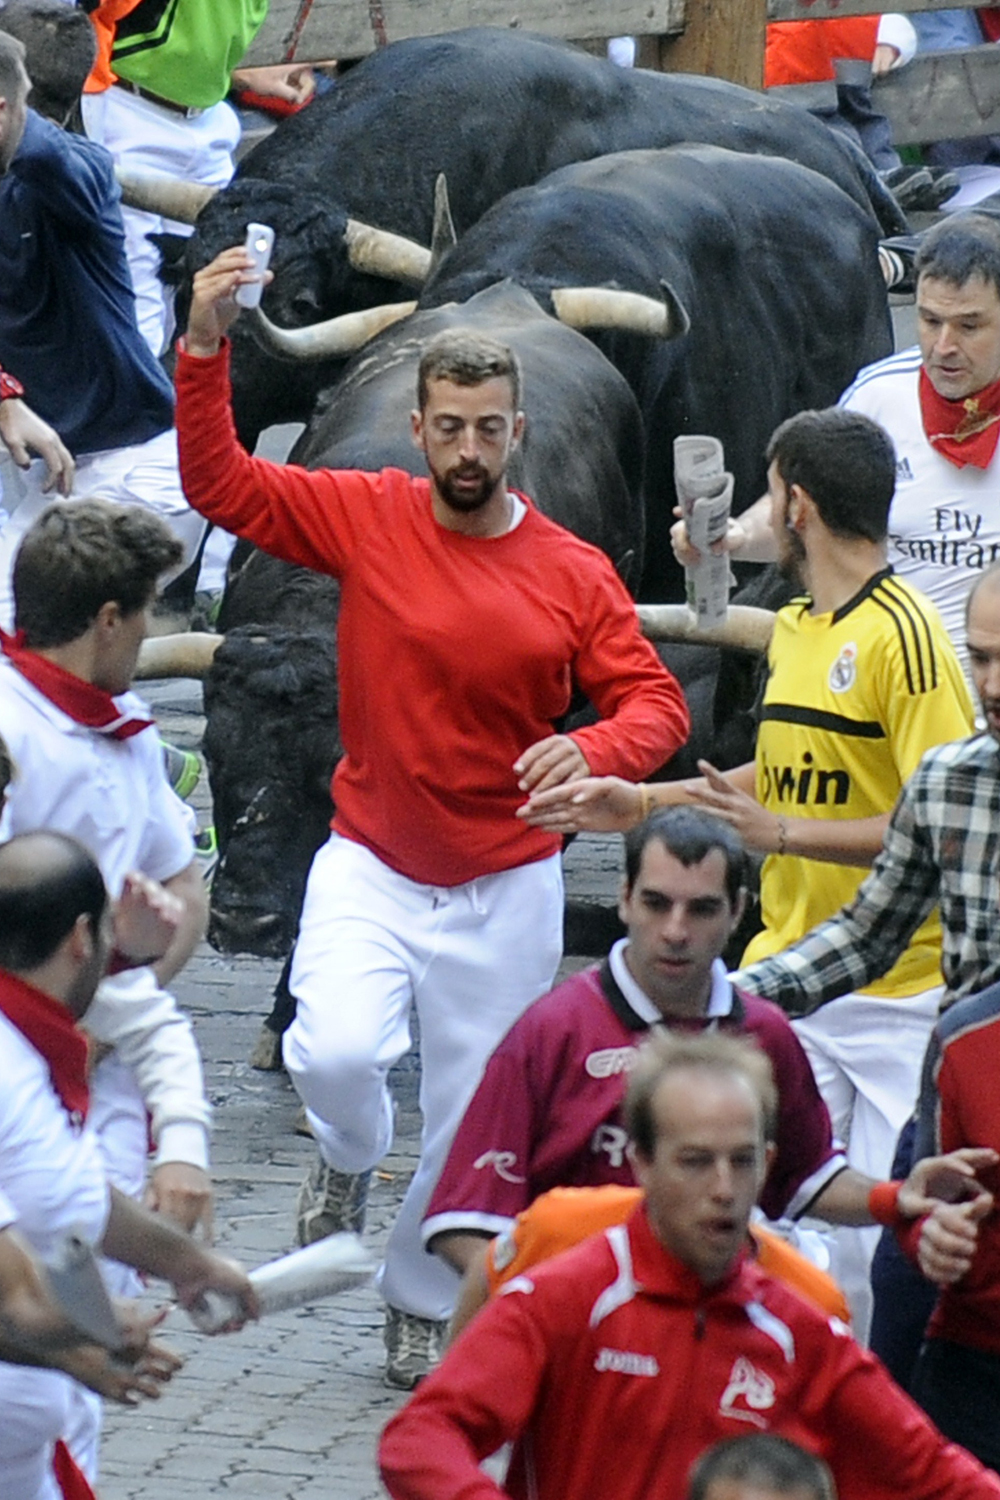 A participant runs in front of Jandilla's bulls as he takes a 'selfie' (photograph of himself) during the fifth bull-run of the San Fermin Festival in Pamplona, northern Spain, on July 11, 2014.